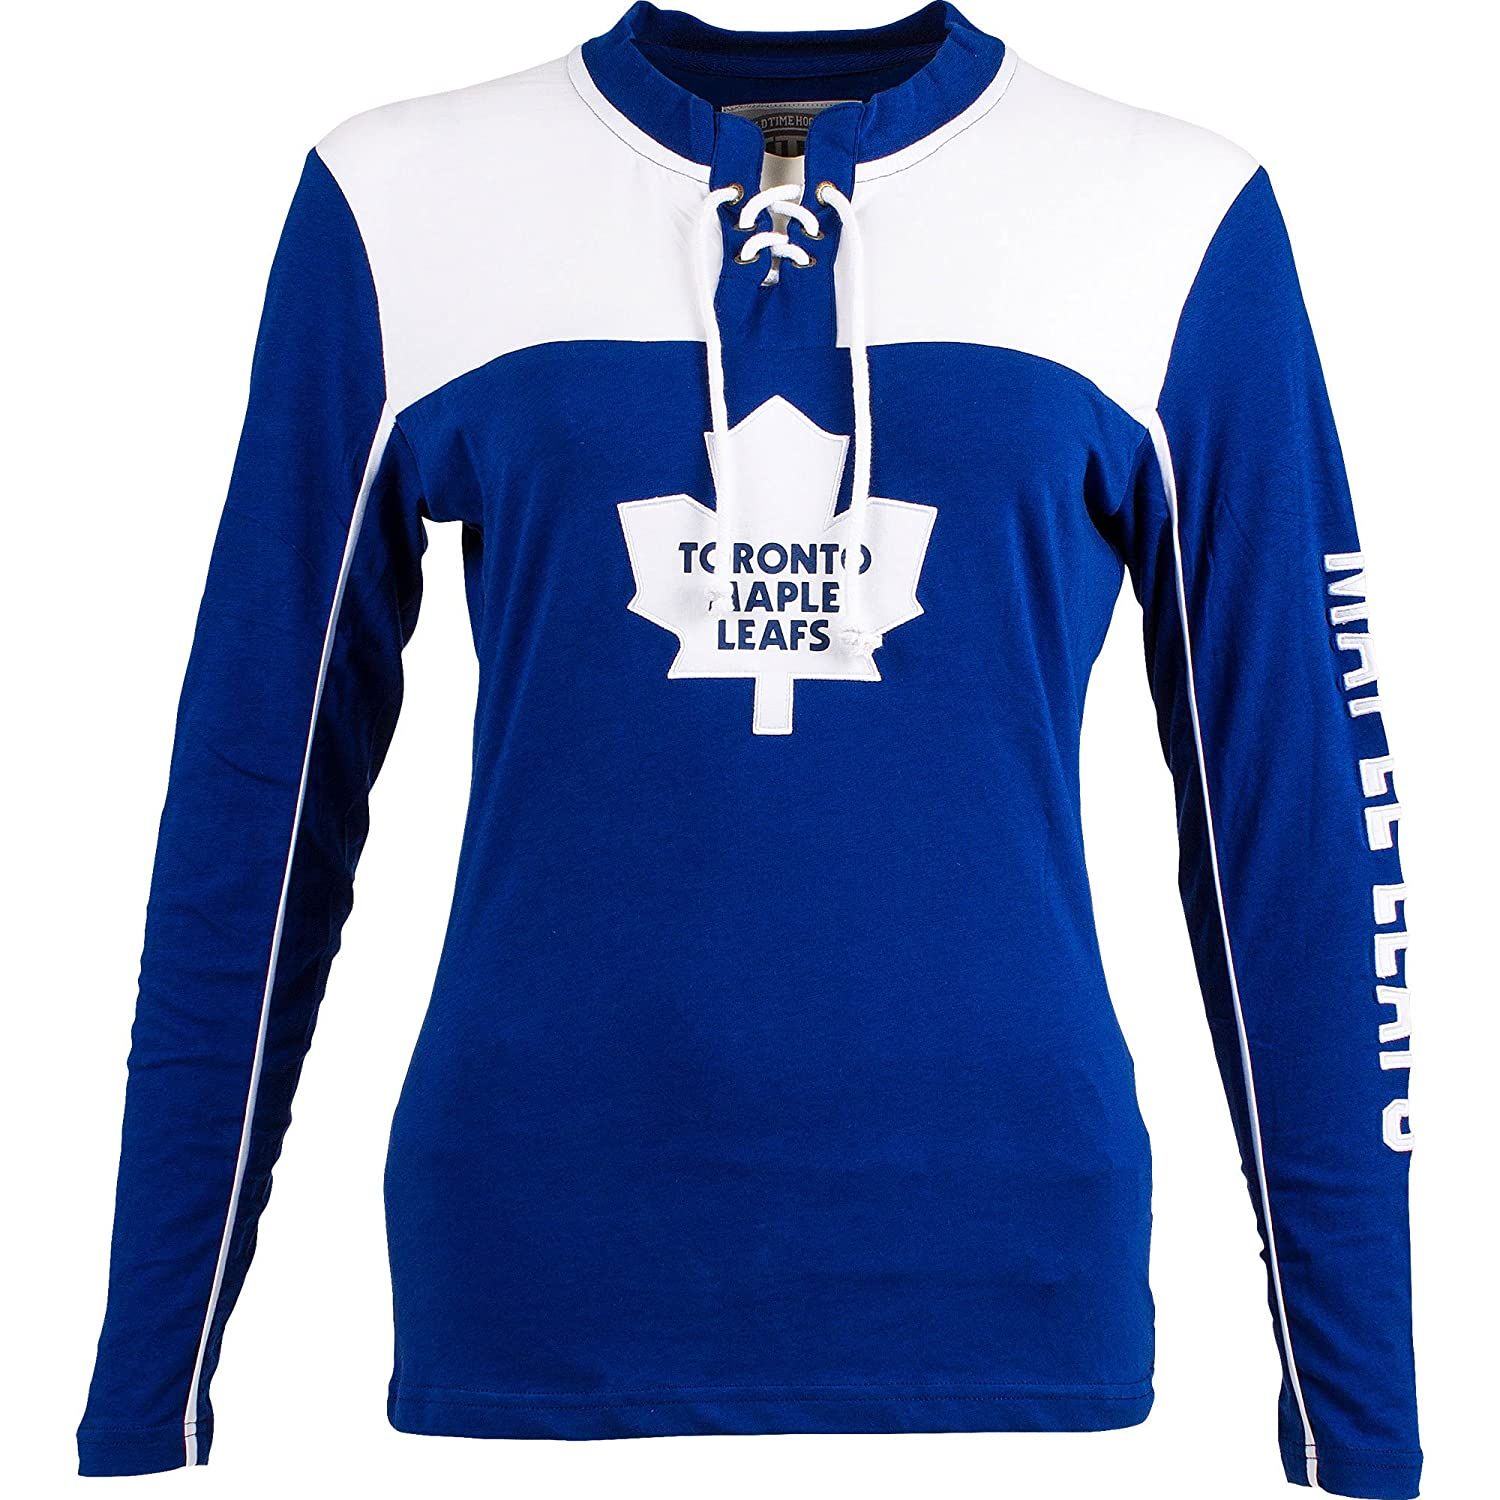 Toronto Maple Leafs Women's Visp Long Sleeve Lace Up Top Old Time Hockey